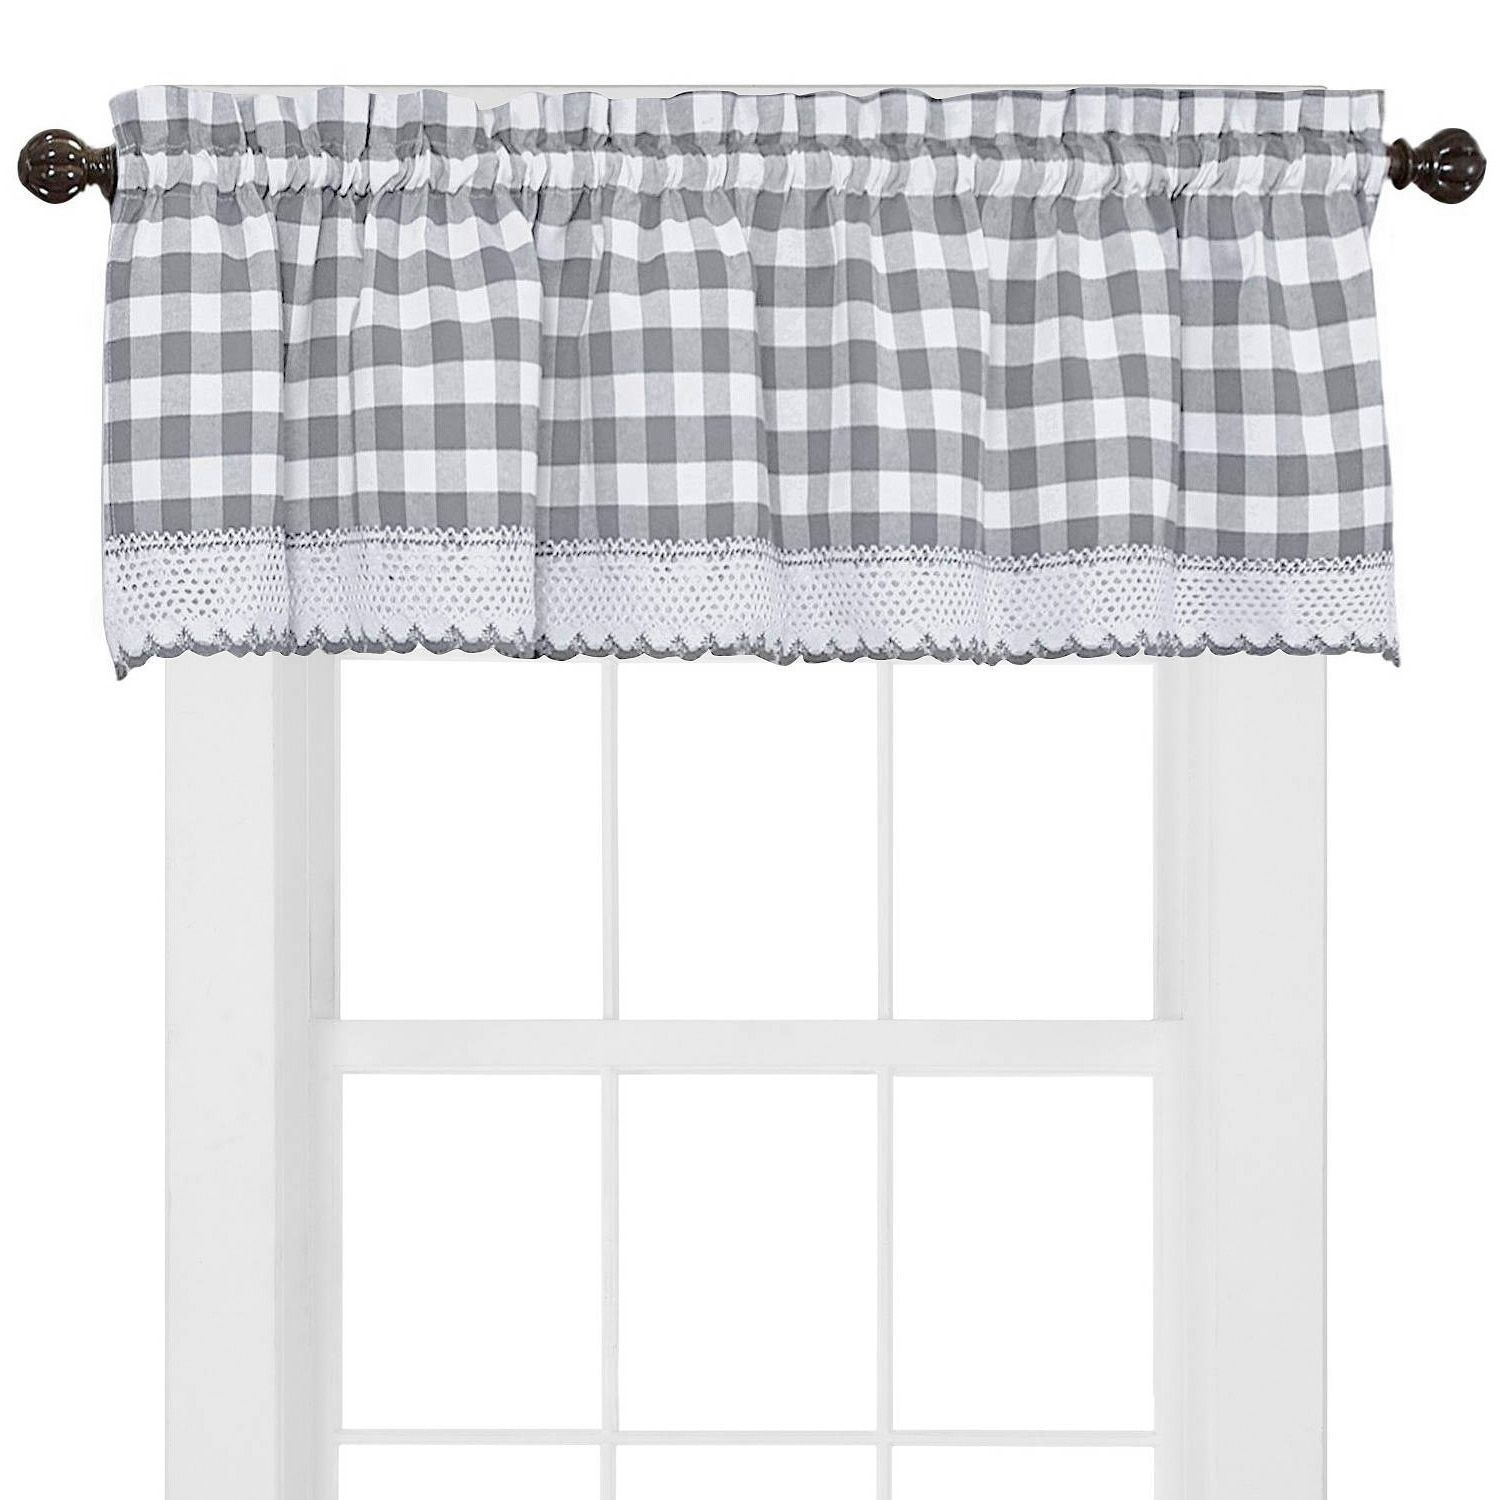 Buffalo Check Cotton Blend Grey Kitchen Curtain Valance With Regard To Cumberland Tier Pair Rod Pocket Cotton Buffalo Check Kitchen Curtains (View 6 of 20)